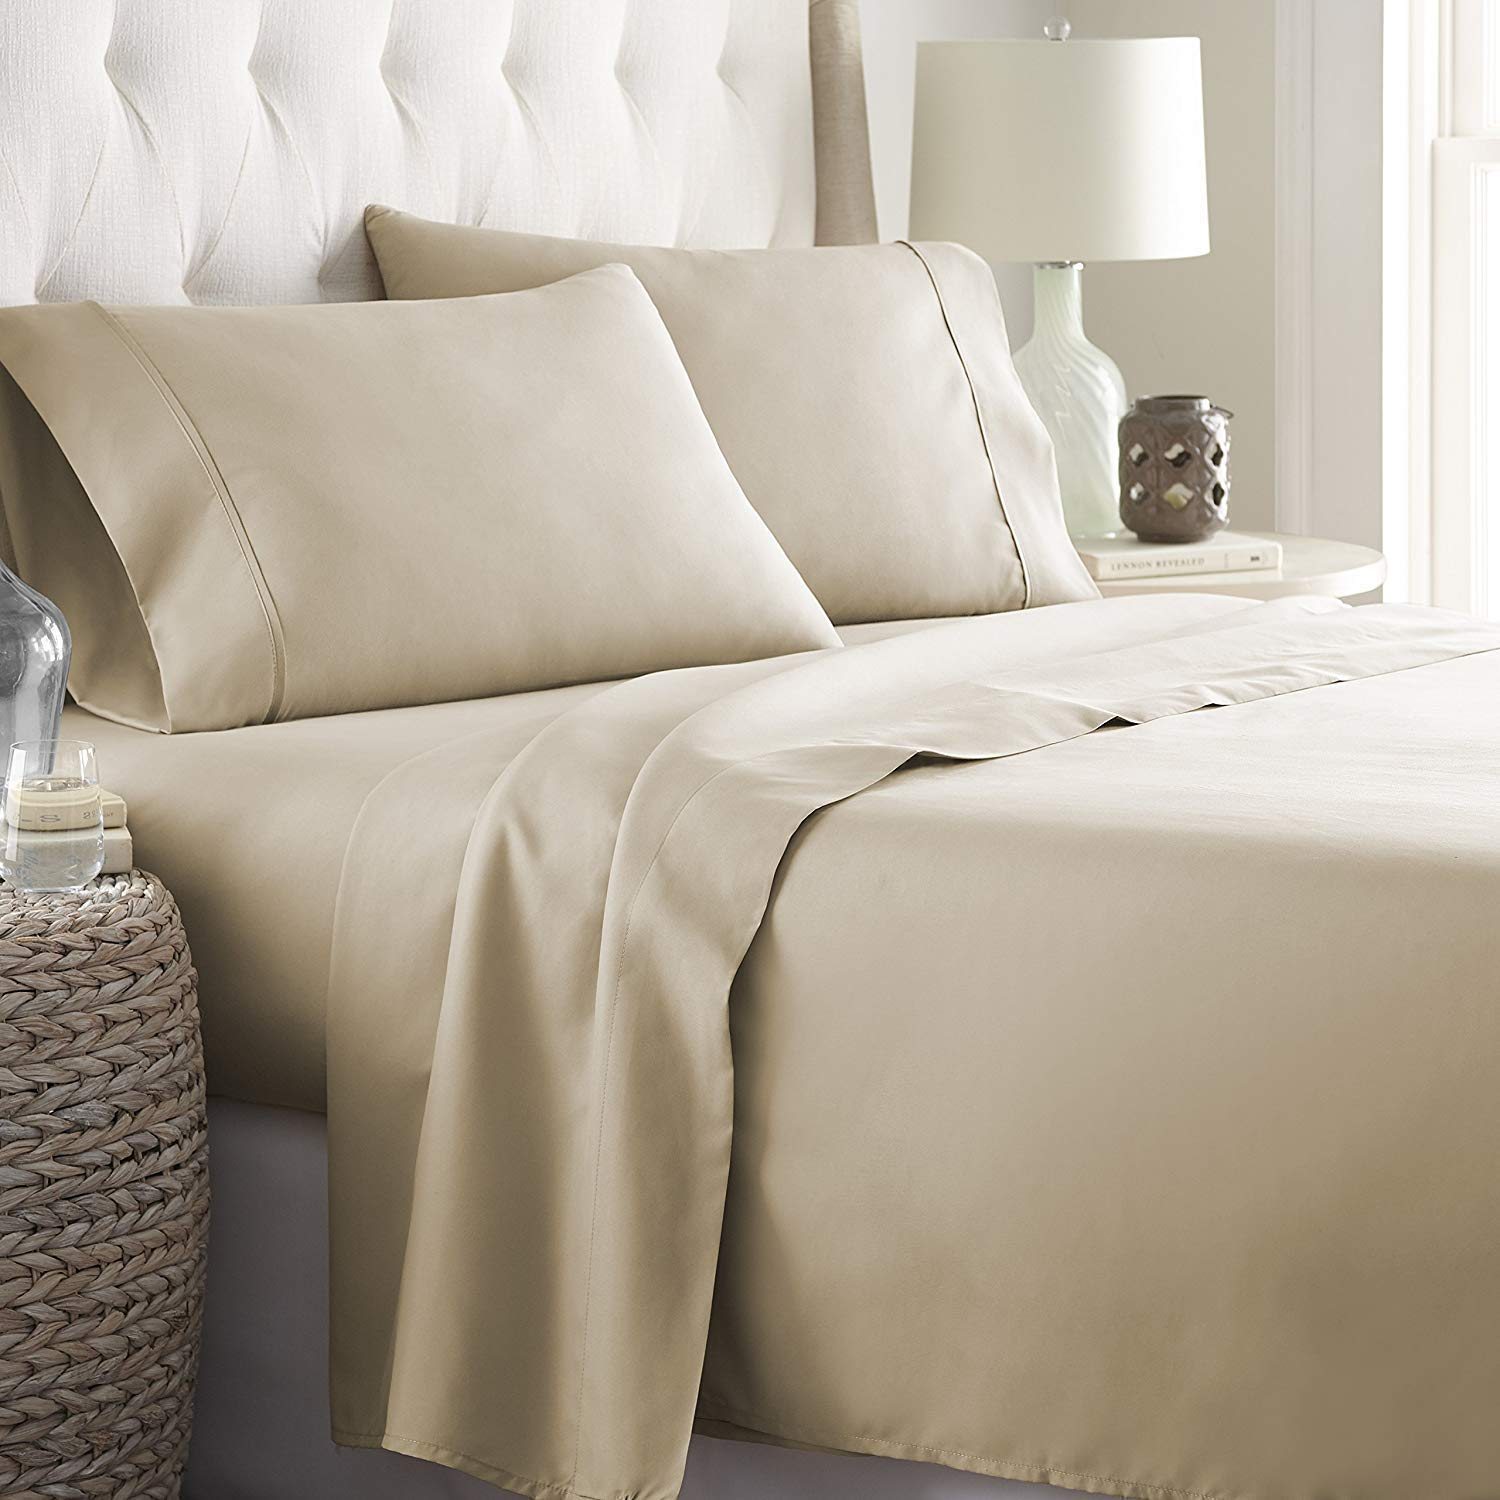 """4 Pc Twin xl Satin Brown 14/"""" deep Pocket Fitted Sheet Set 2 Pc Pillow Covers"""